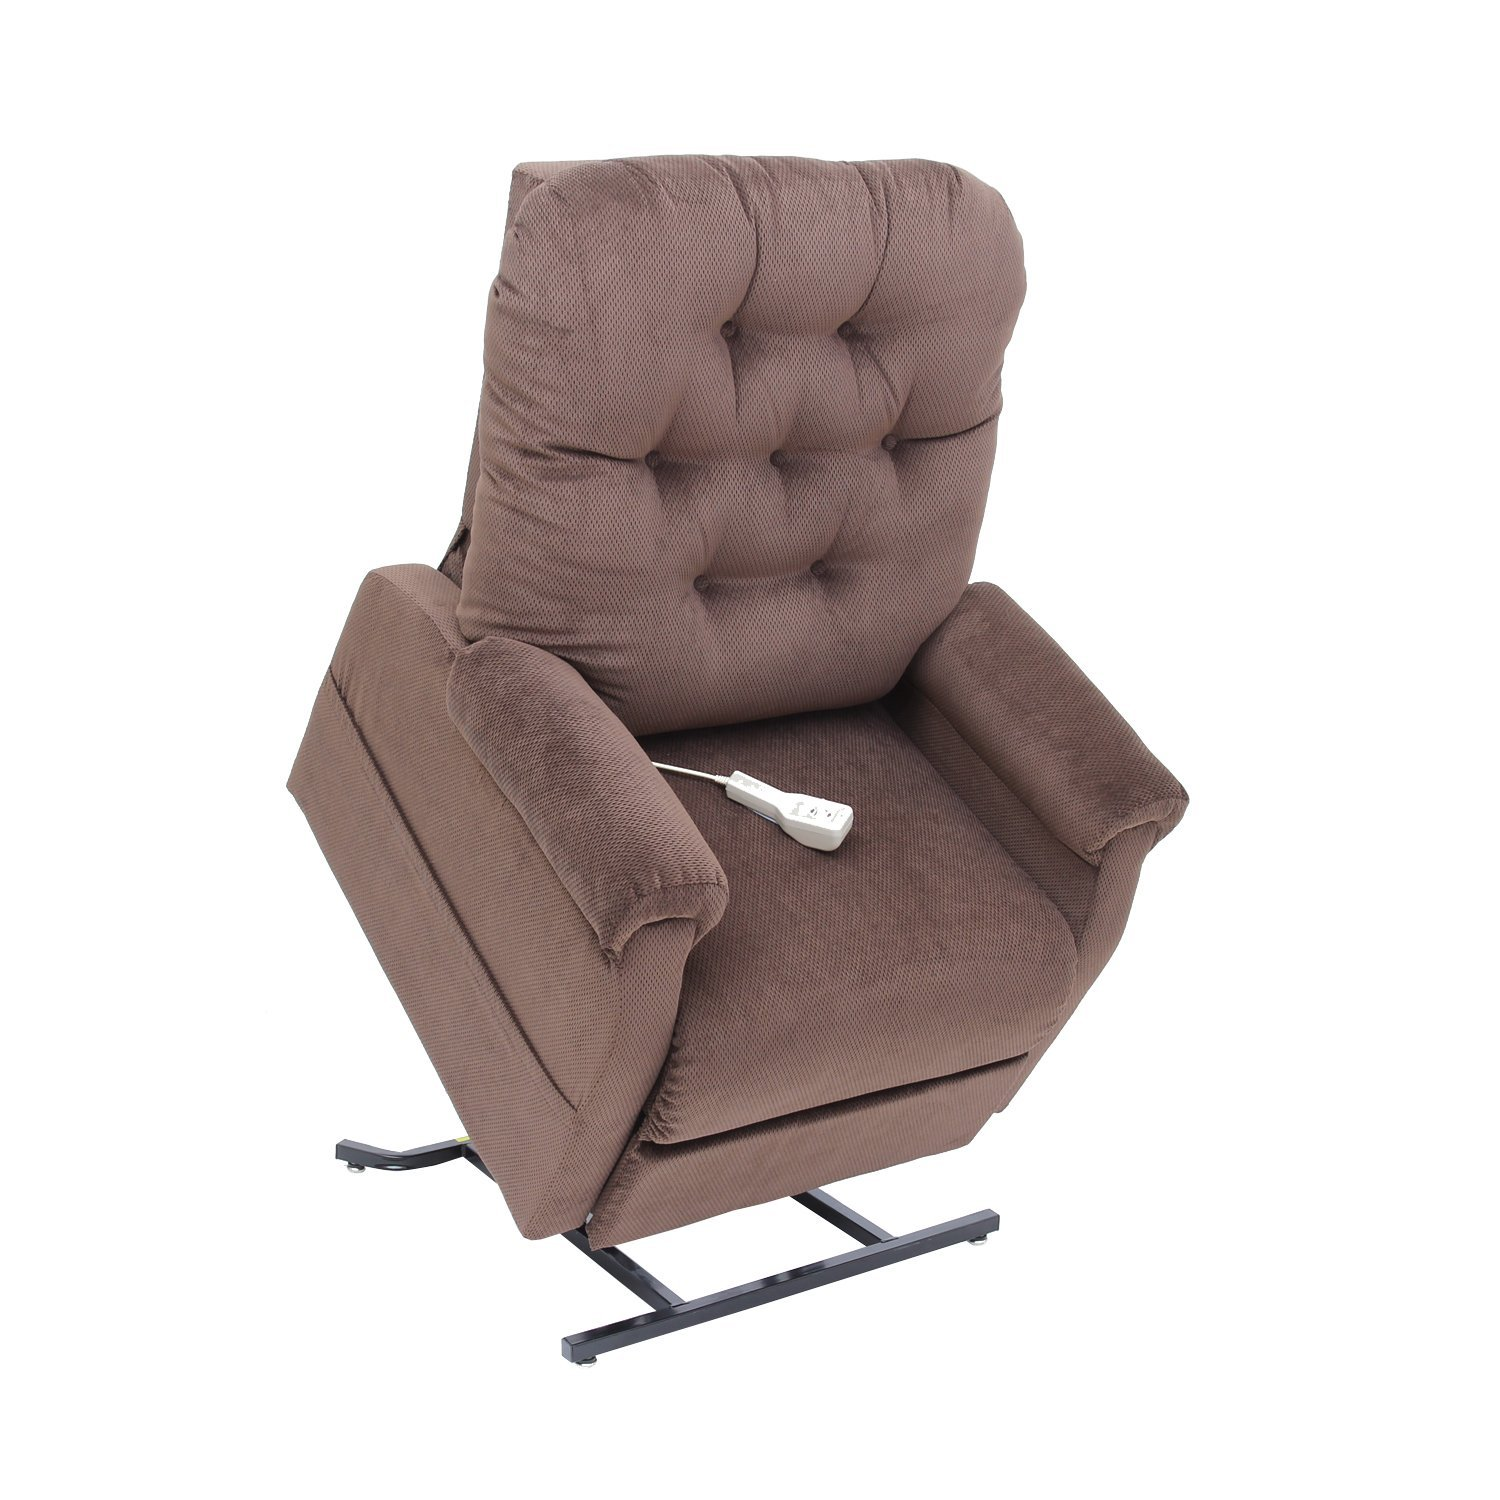 lift chair walgreens recliner disc target types of recliners best